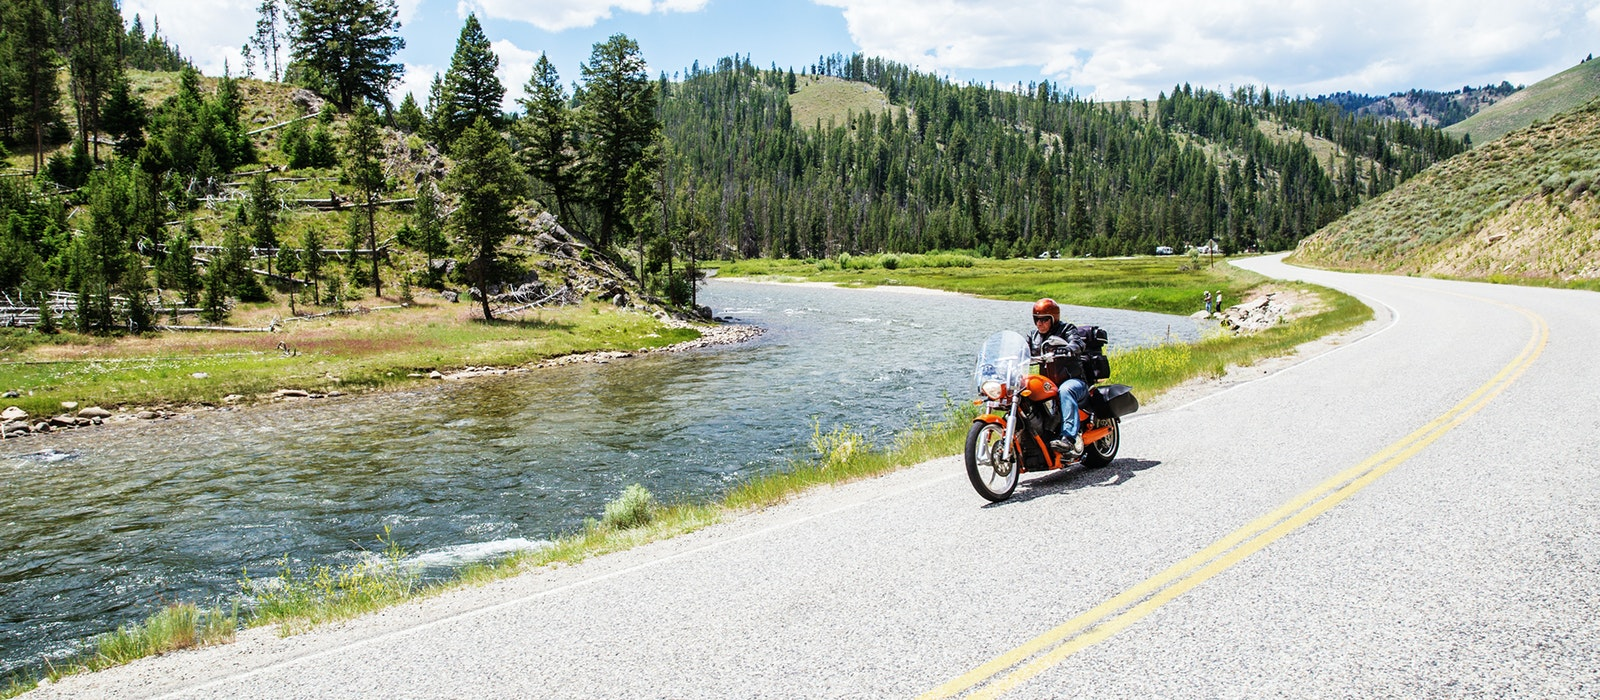 The best way to take in Idaho's high mountains, crystal-blue rivers, and rolling golden fields is by driving its scenic byways.